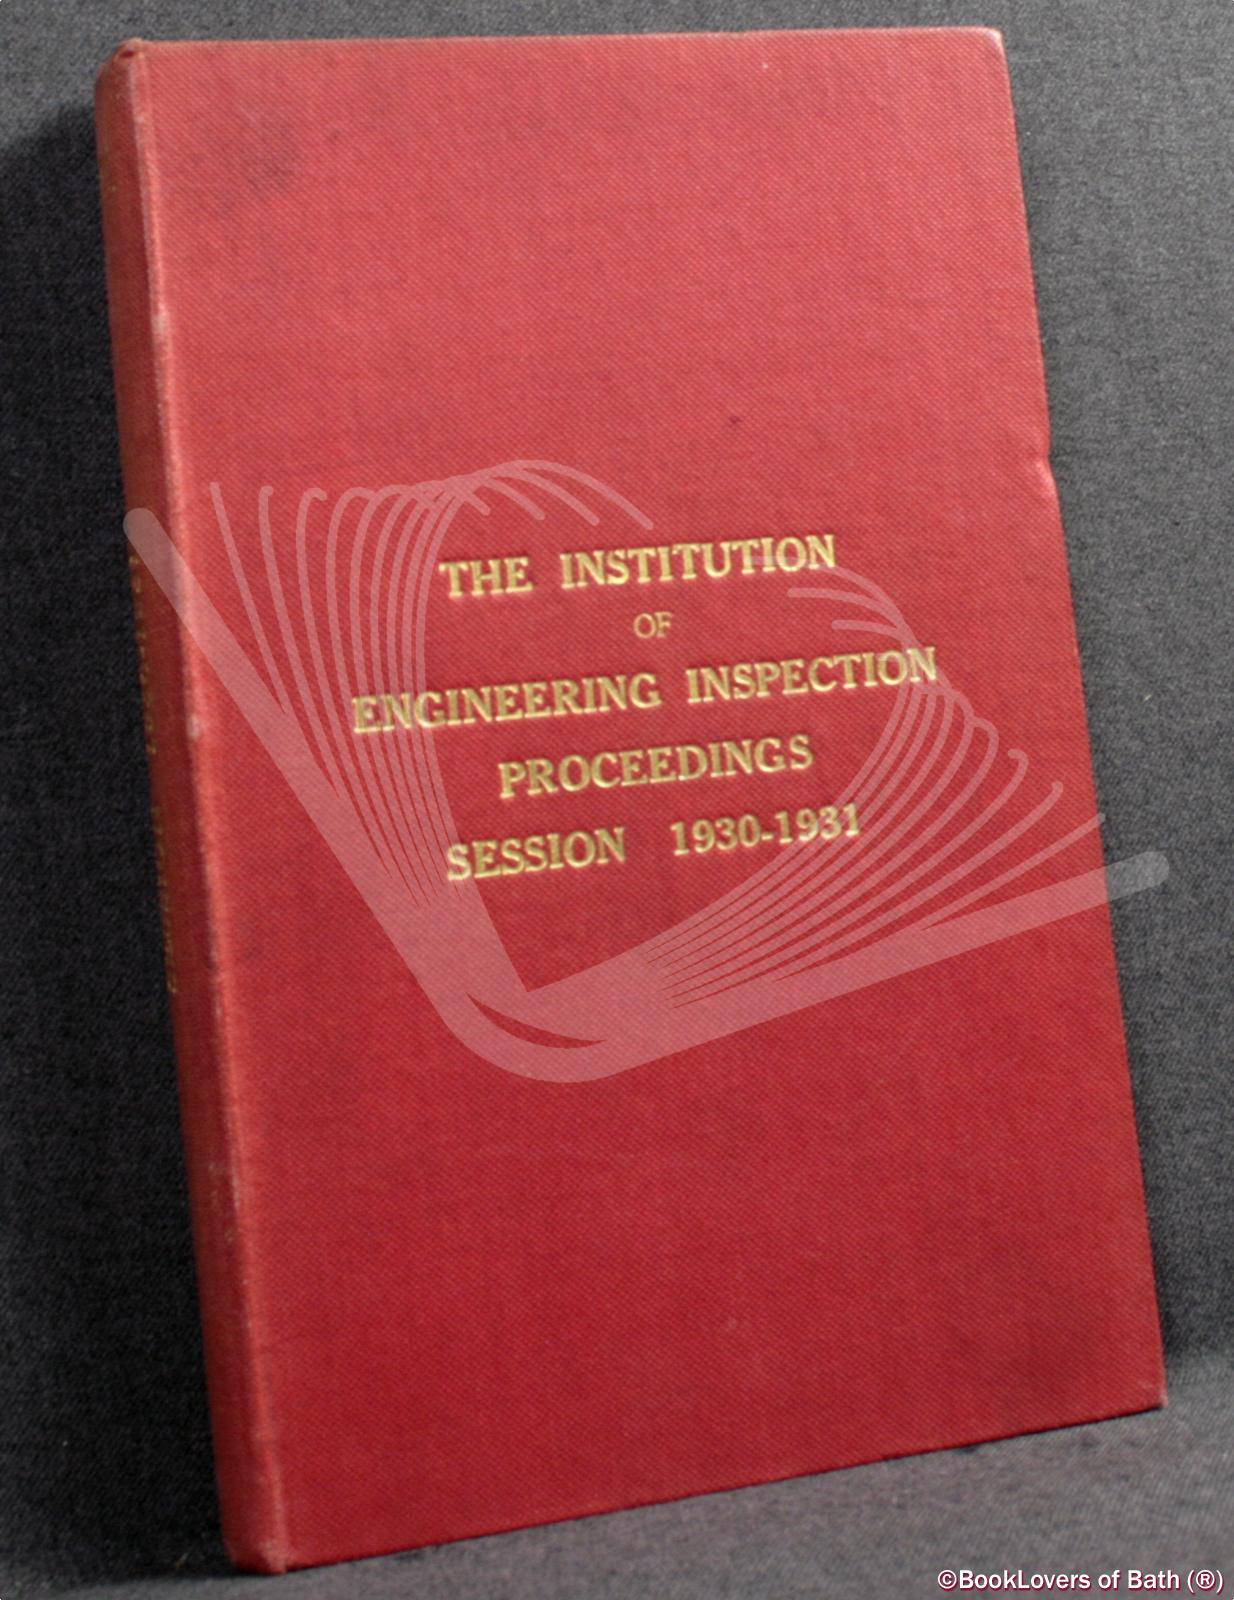 The Institute Of Engineering Inspection Proceedings Session 1930-1931 - Anon.